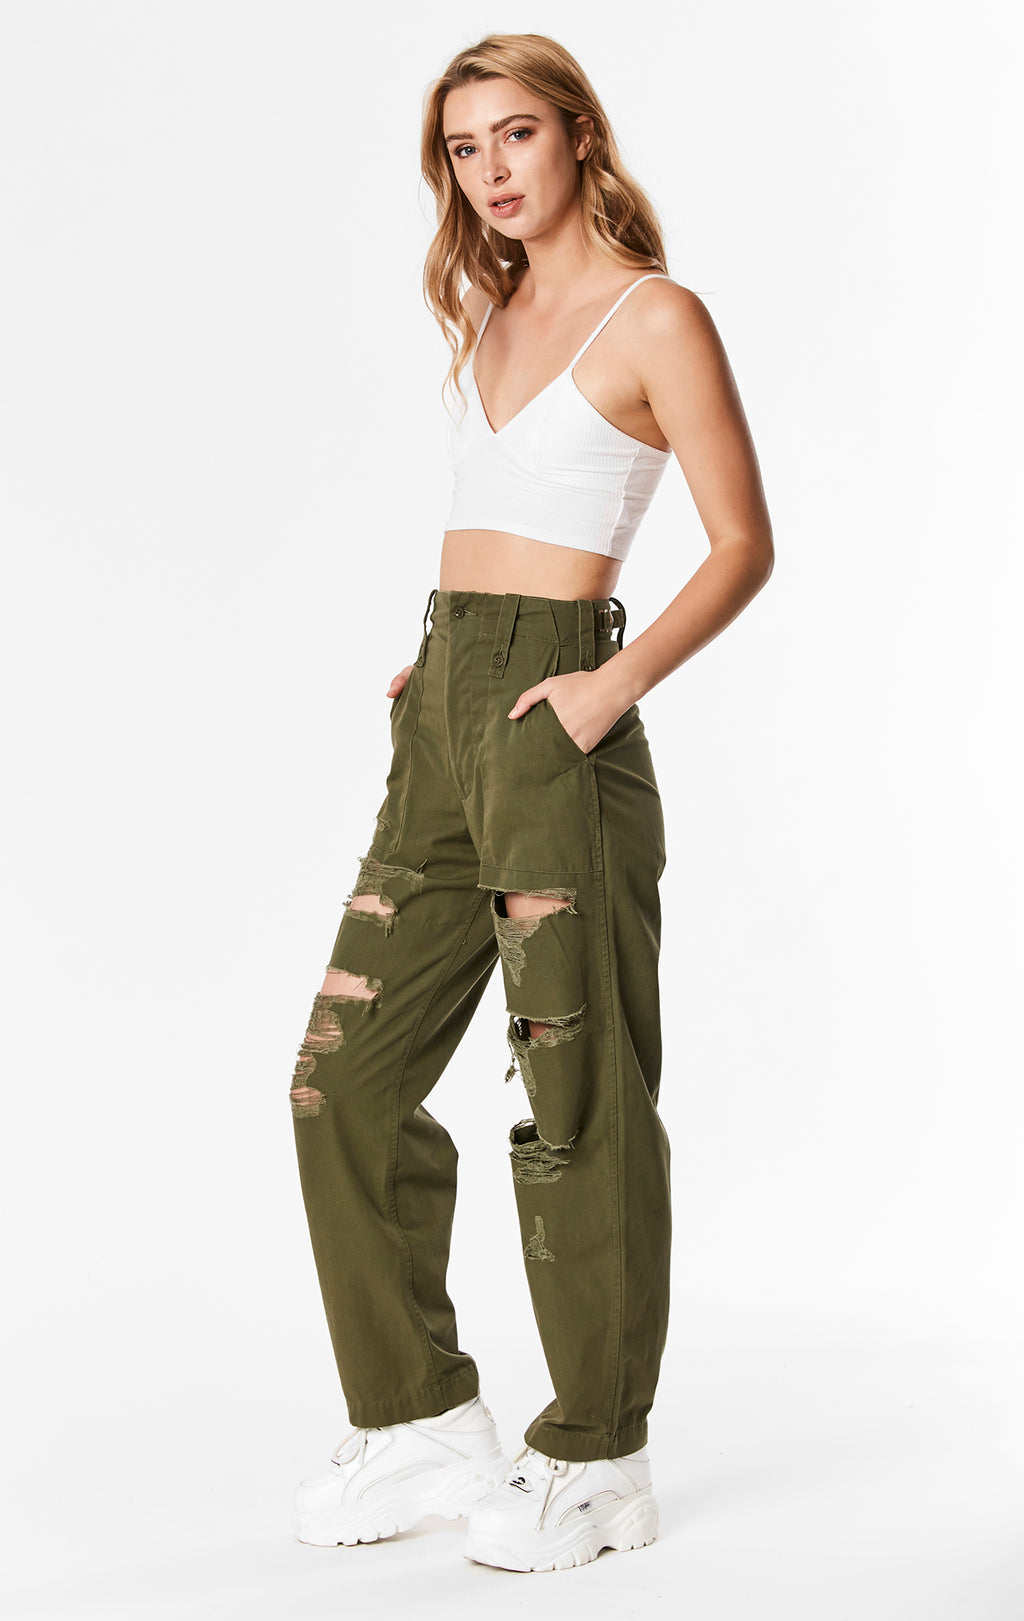 SUPER SHRED ARMY PANT